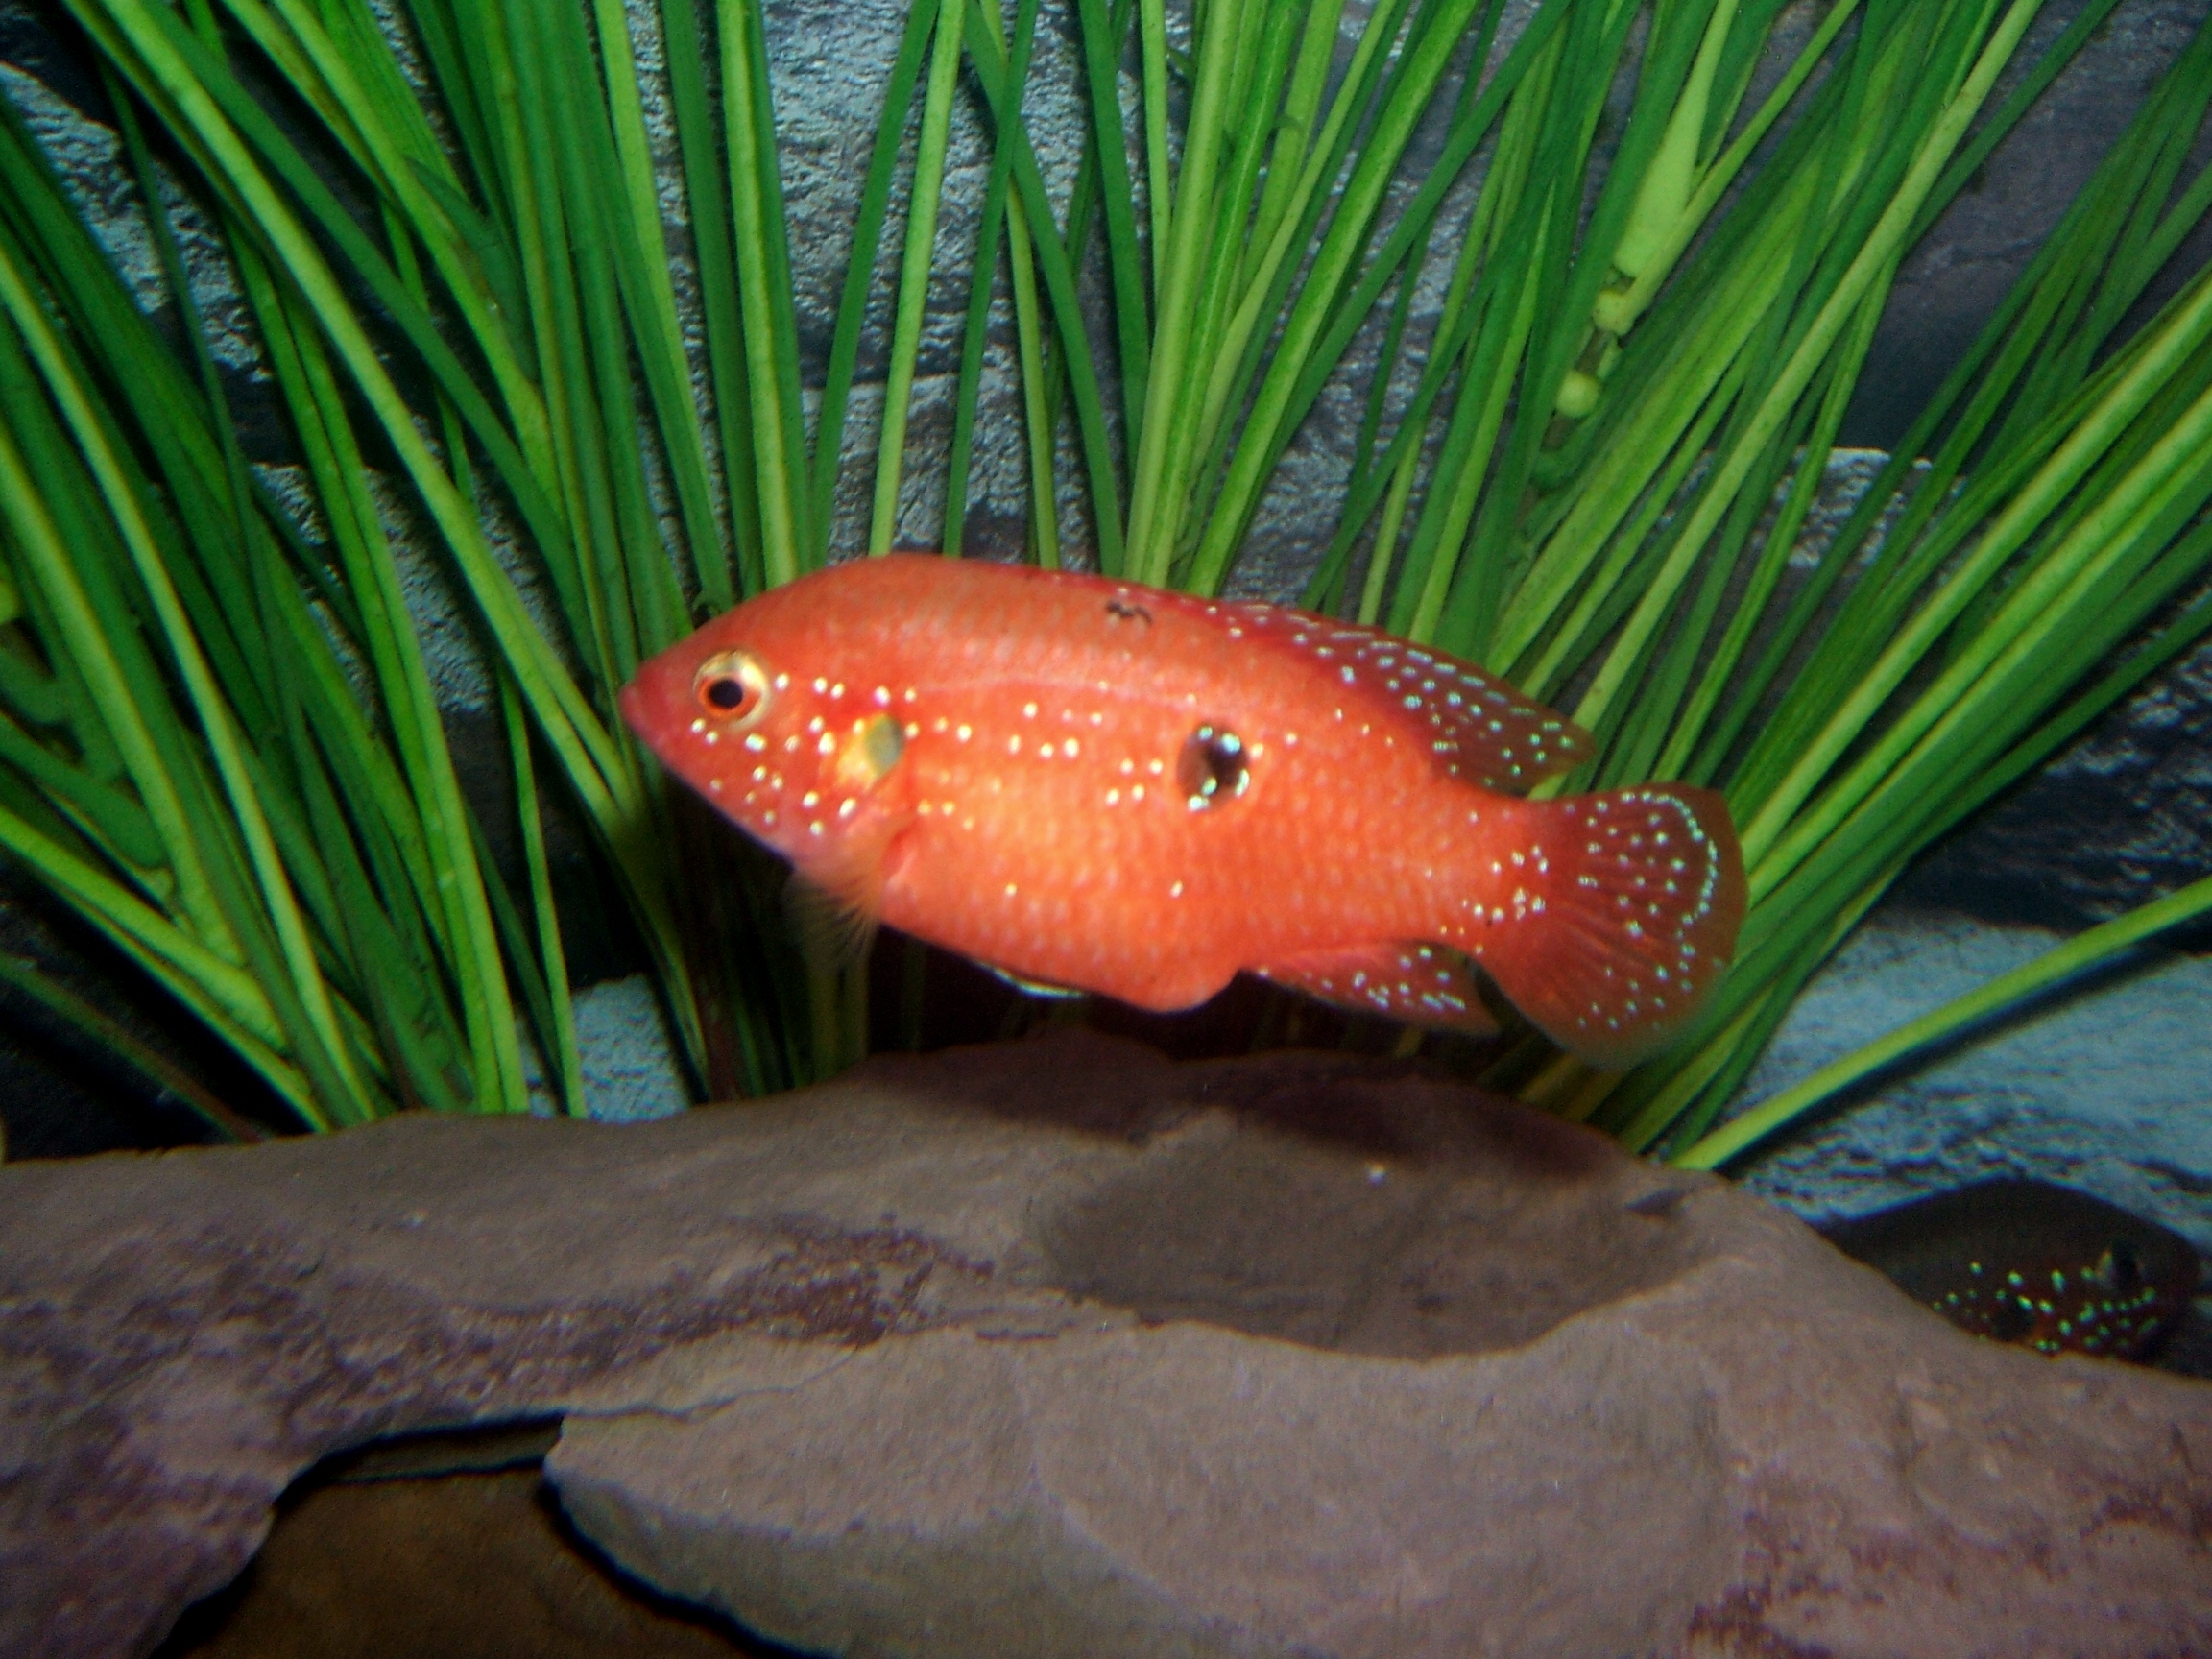 cichlids.com: for Sarah Kaper